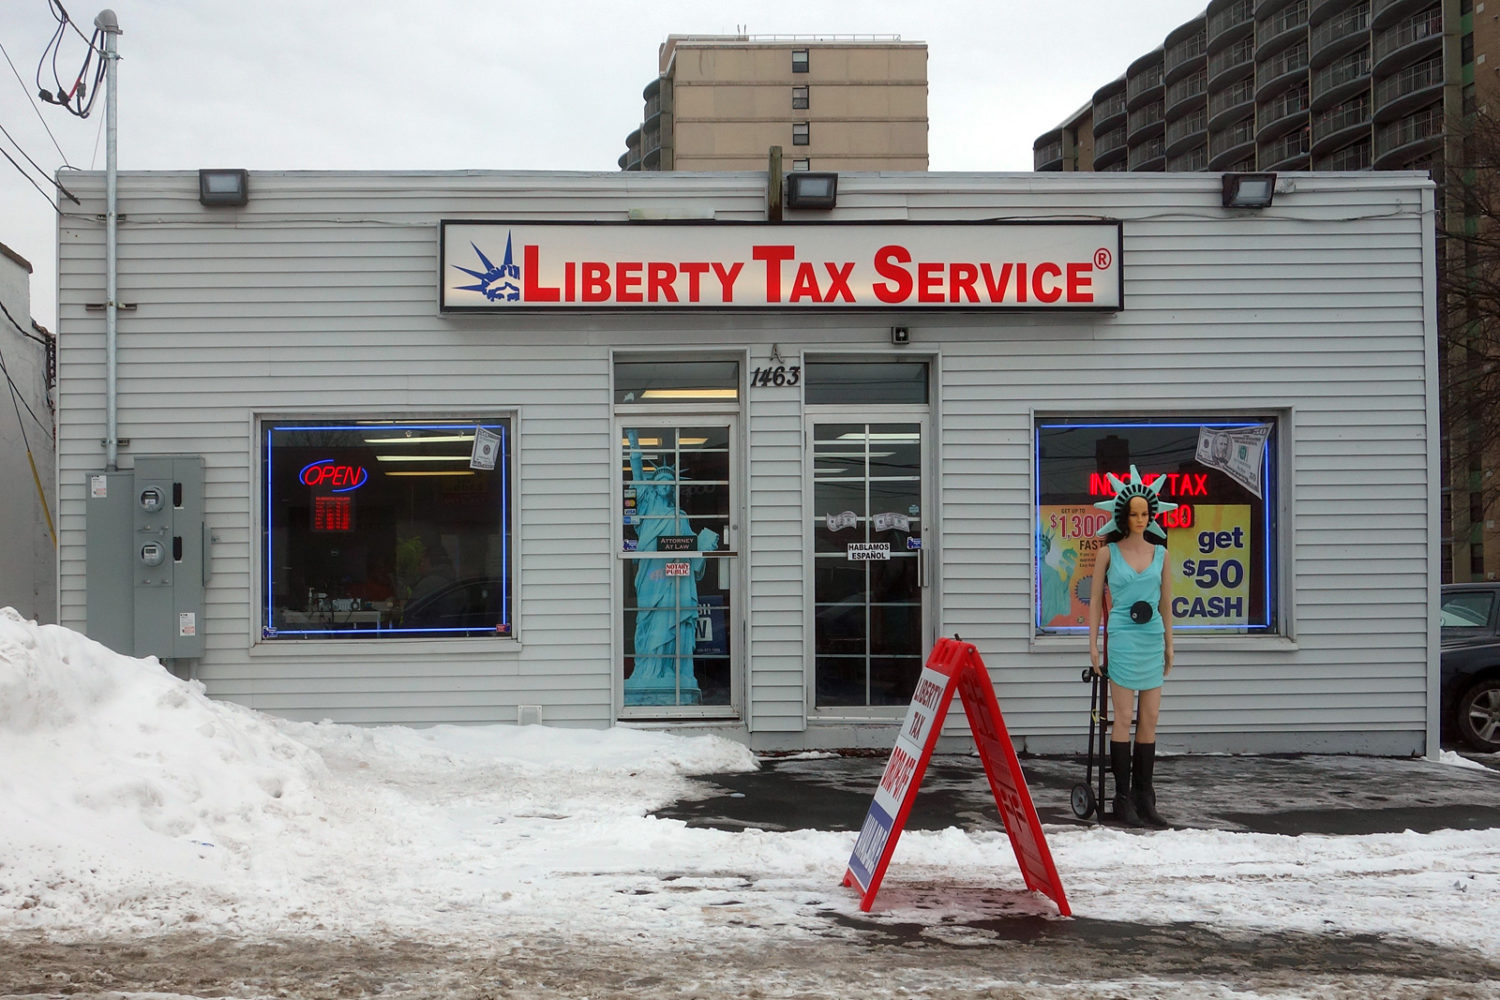 Liberty Tax Service on Hudson Avenue in Rochester, New York